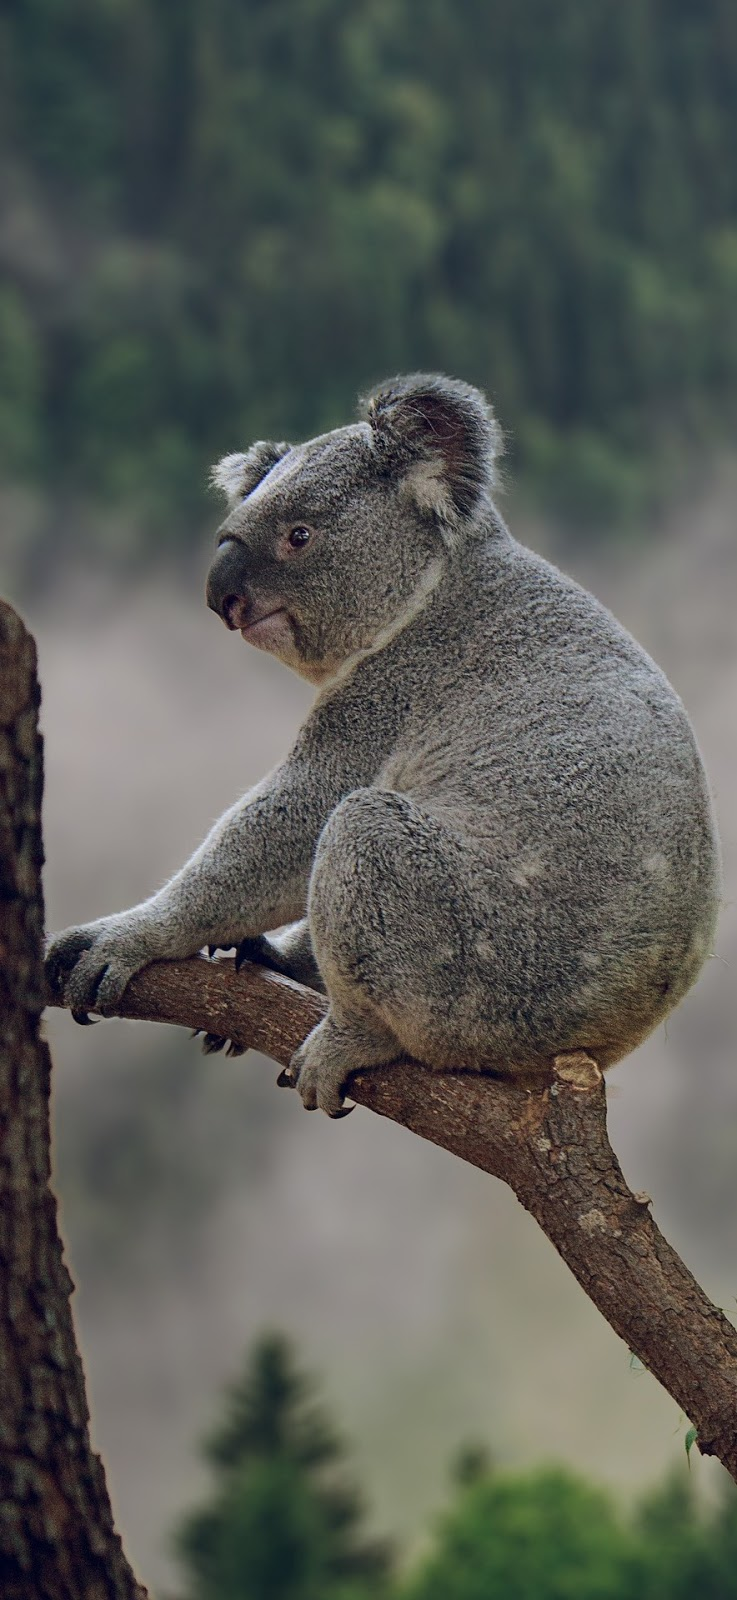 Picture of a cute koala bear.